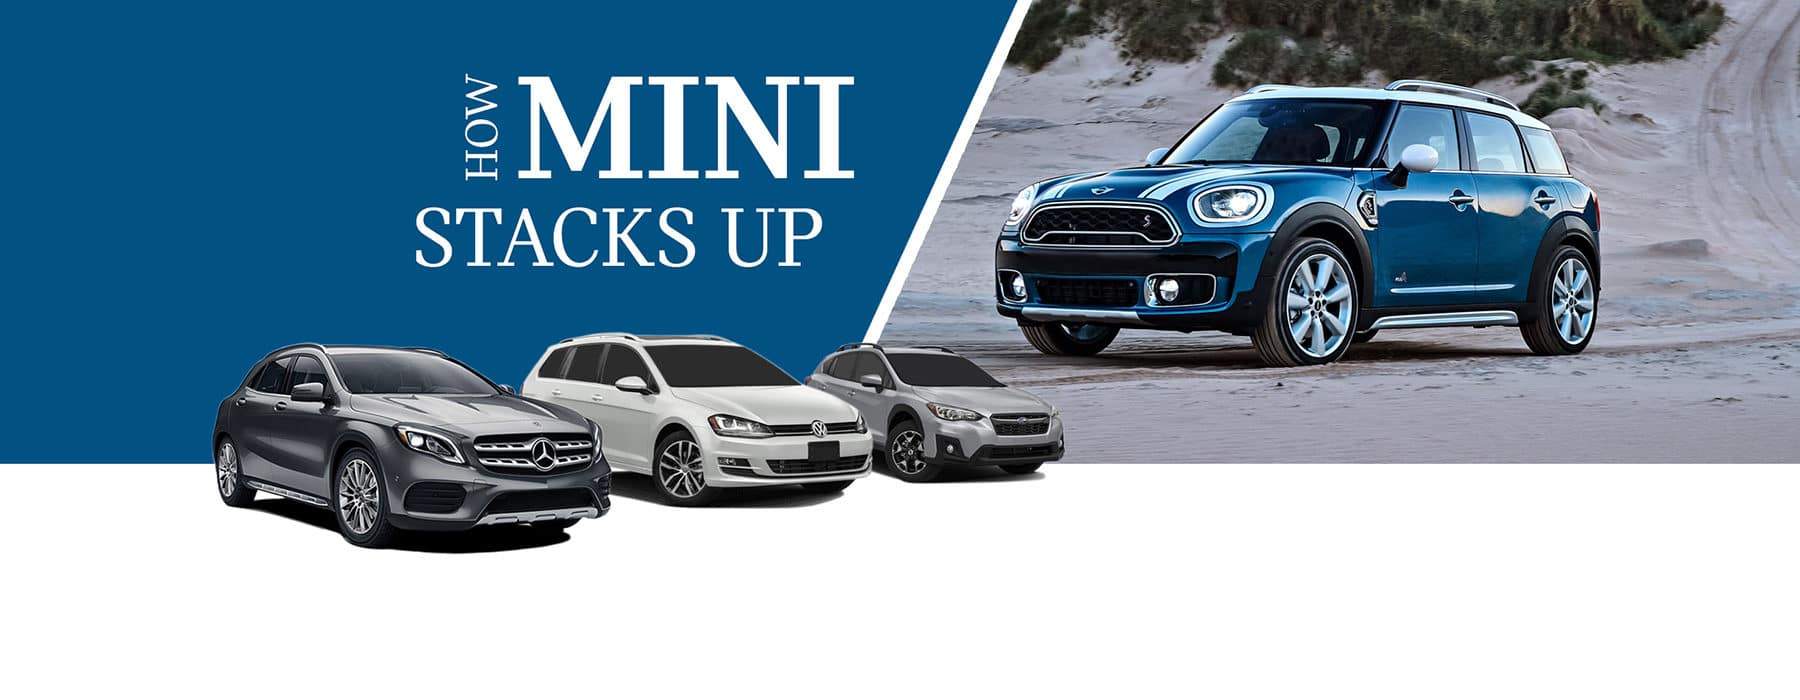 Schomp Mini In Highlands Ranch Co New And Pre Owned Cars